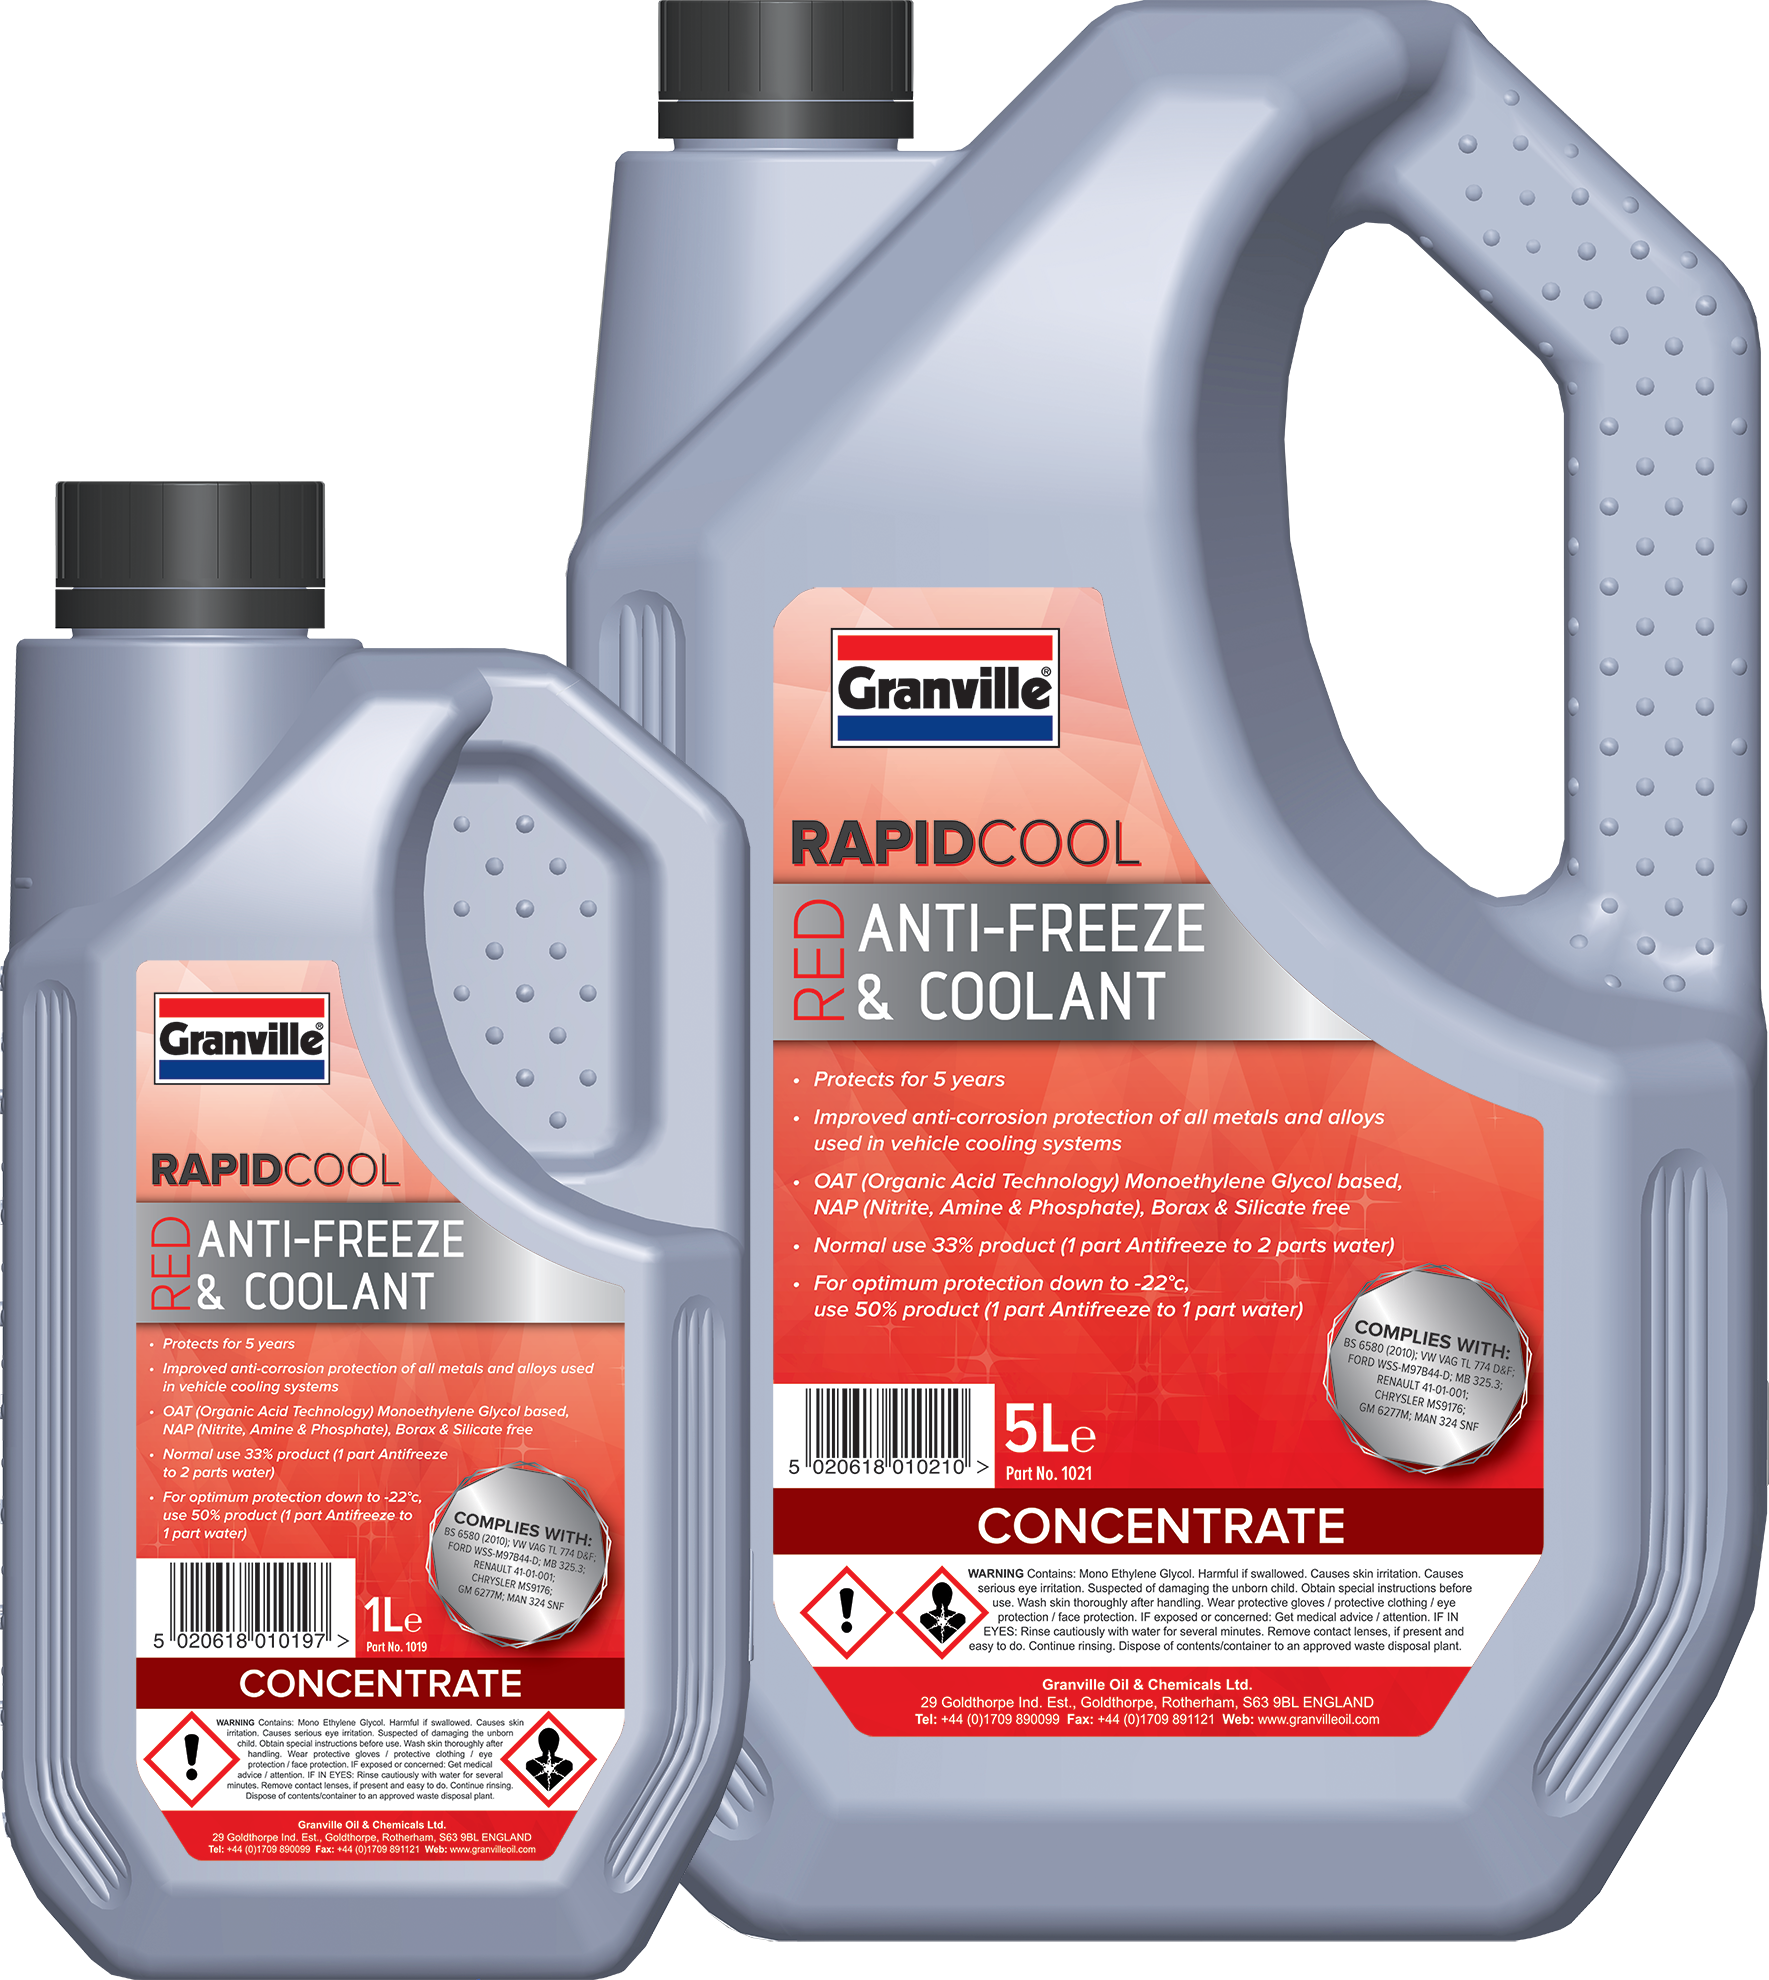 Granville Introducing Rapid Cool Antifreeze Coolant Gm Engine Red And Is An Ethylene Glycol Based Concentrate Which Uses Organic Acid Inhibitor Technology Oat